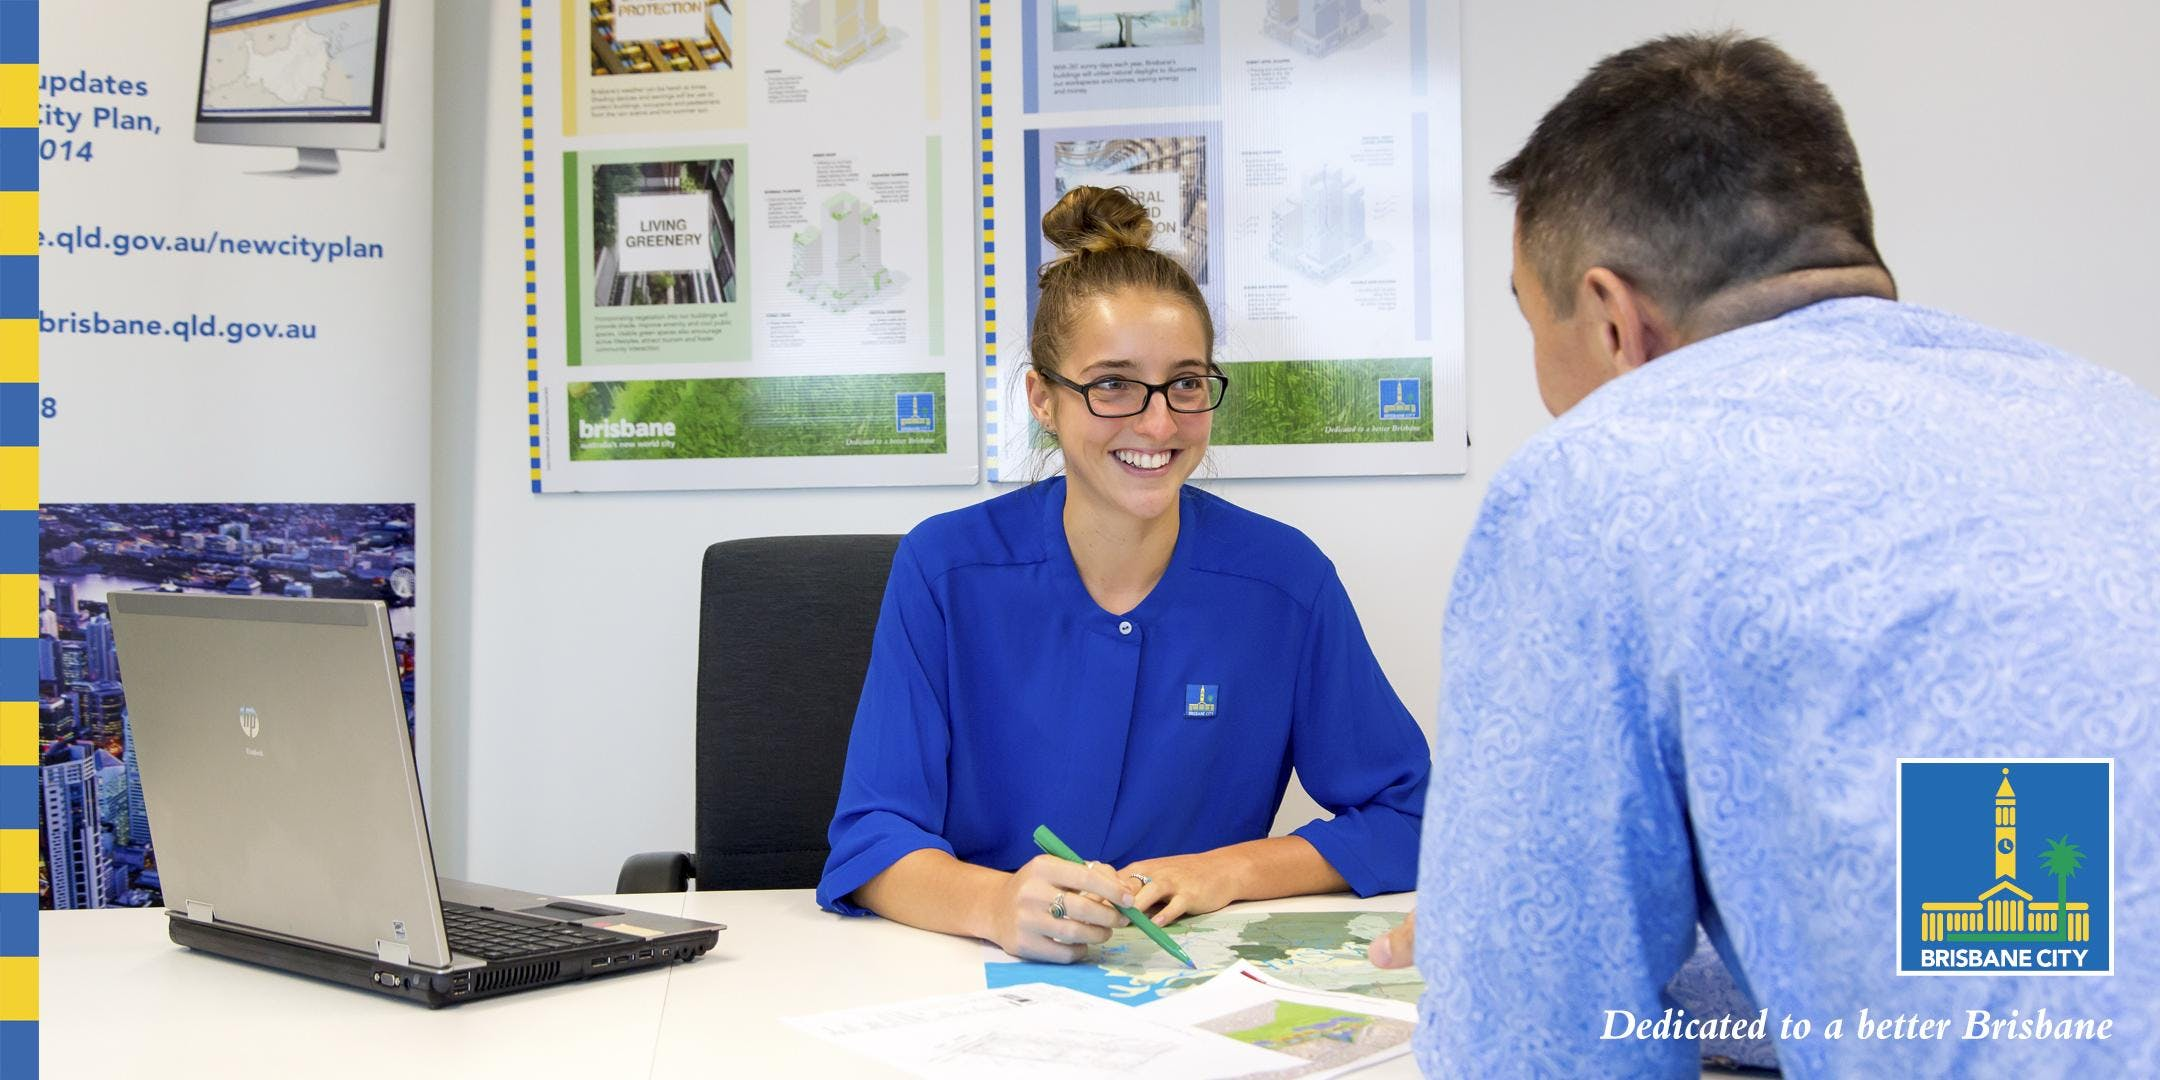 Talk to a Planner, Chermside - Afternoon sess